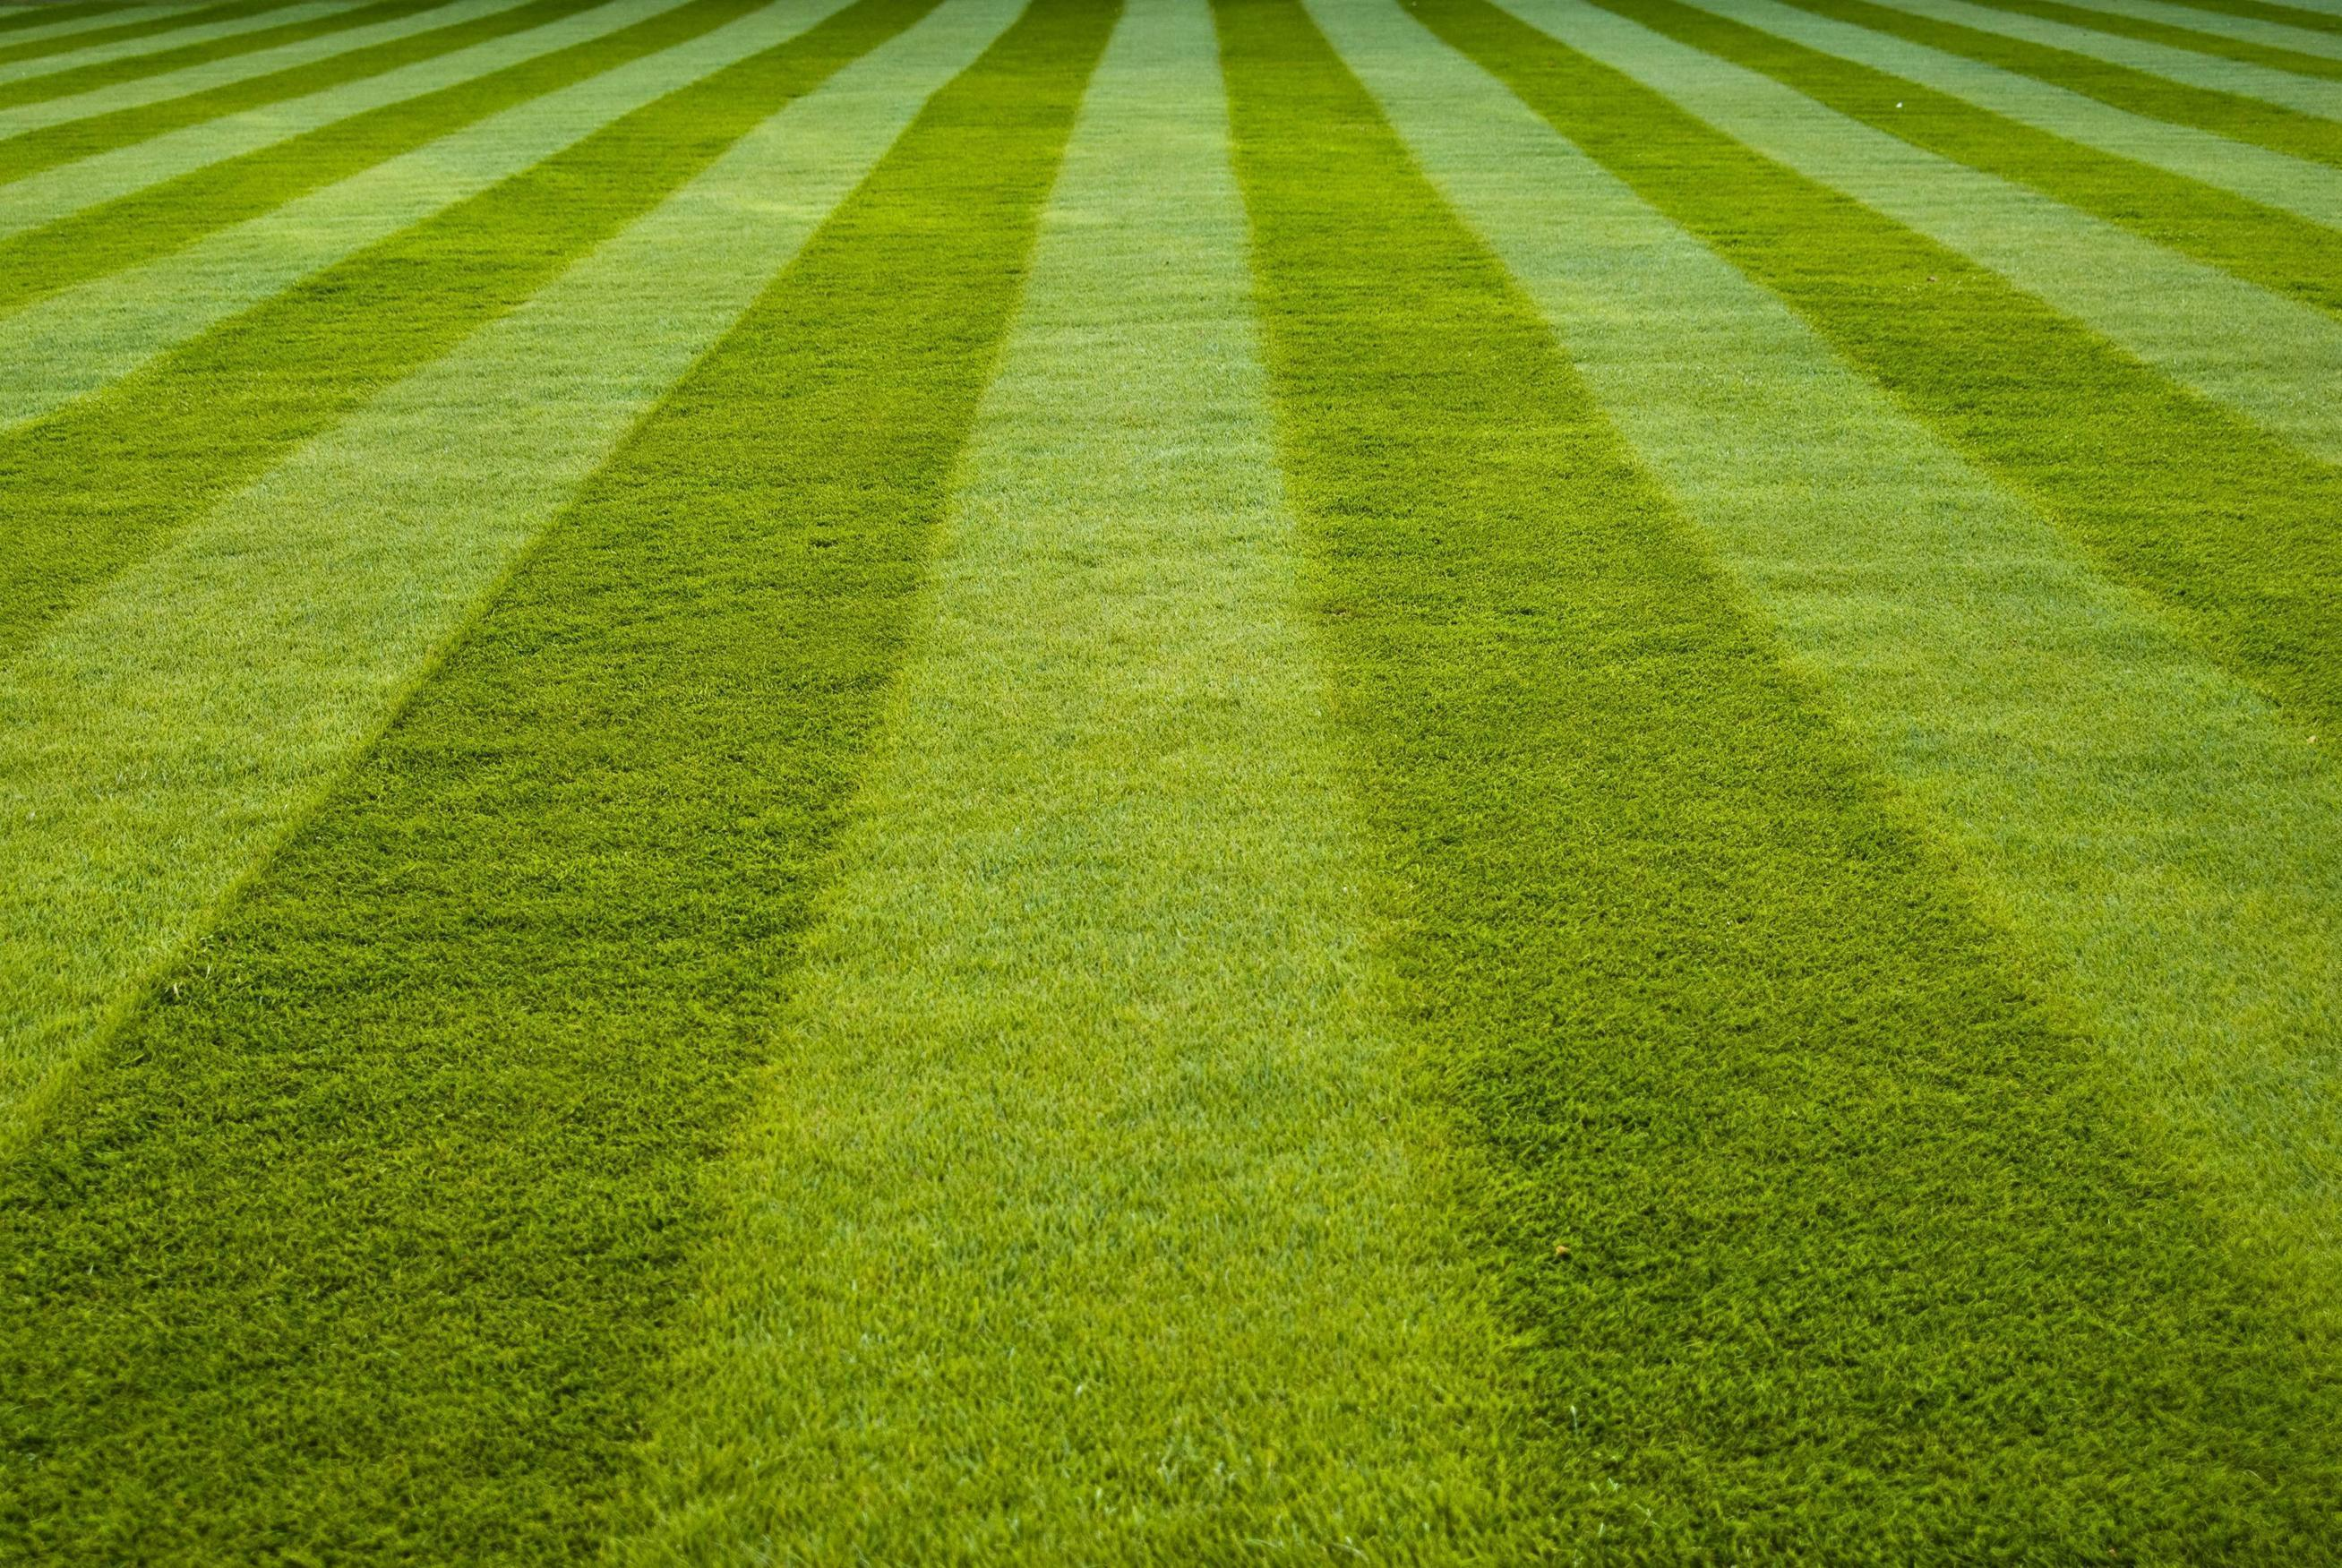 Awesome Lawn Games